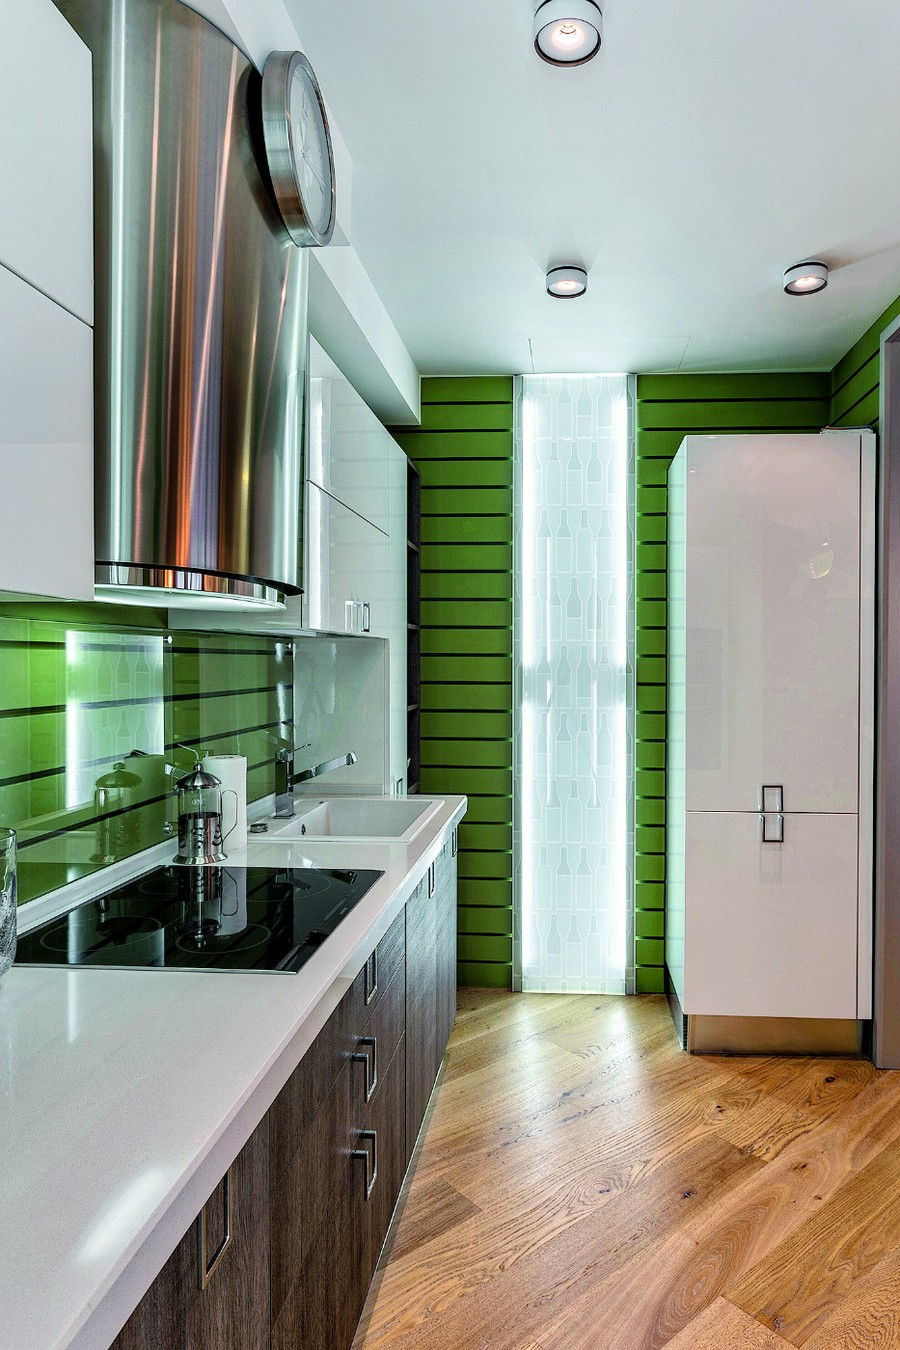 4-2-contemporary-style-open-concept-kitchen-interior-design-plasterboard-sheetrock-3D-wall-decor-green-brown-white-cabinets-diagonal-parquetry-chromed-cooker-hood-LED-lights